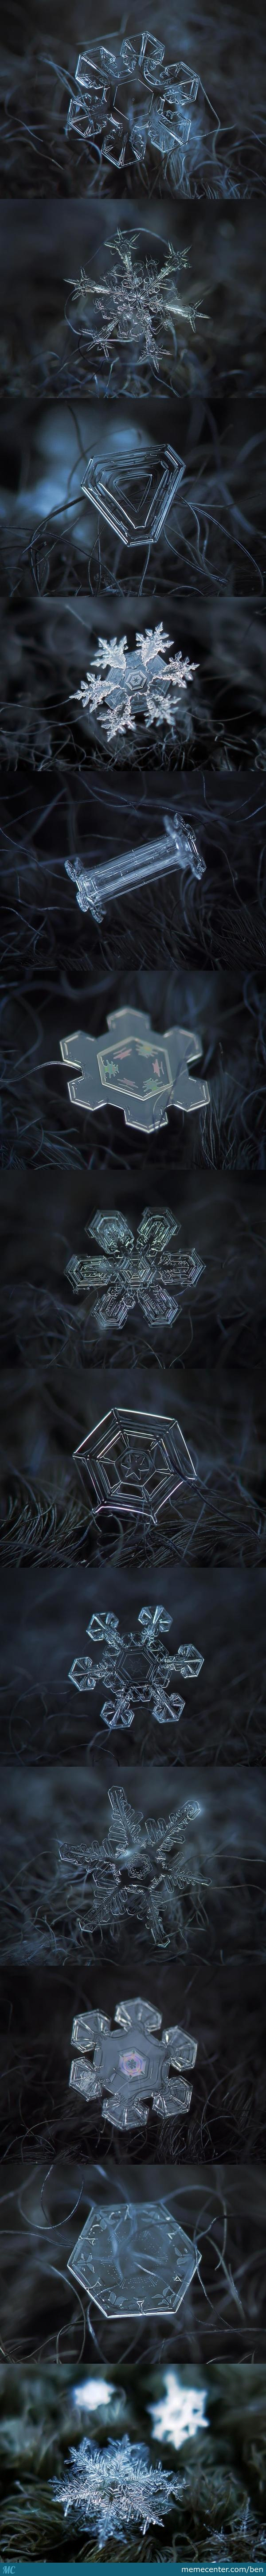 Macro Snowflake Photos By Alexey Kljatov